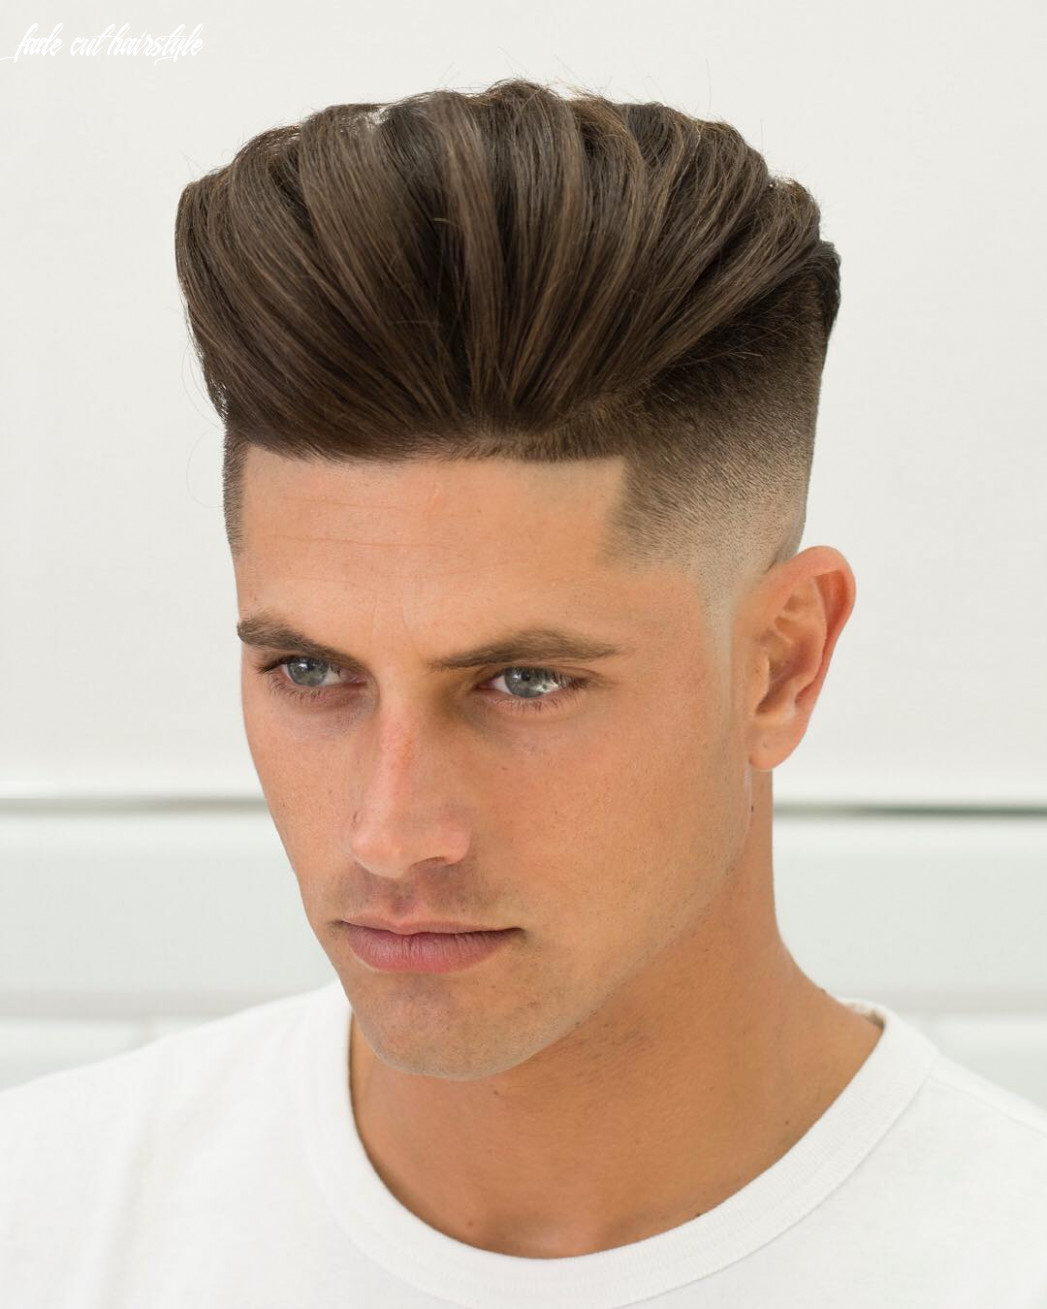 Top 9 Fade Haircuts For Men (9 Styles)